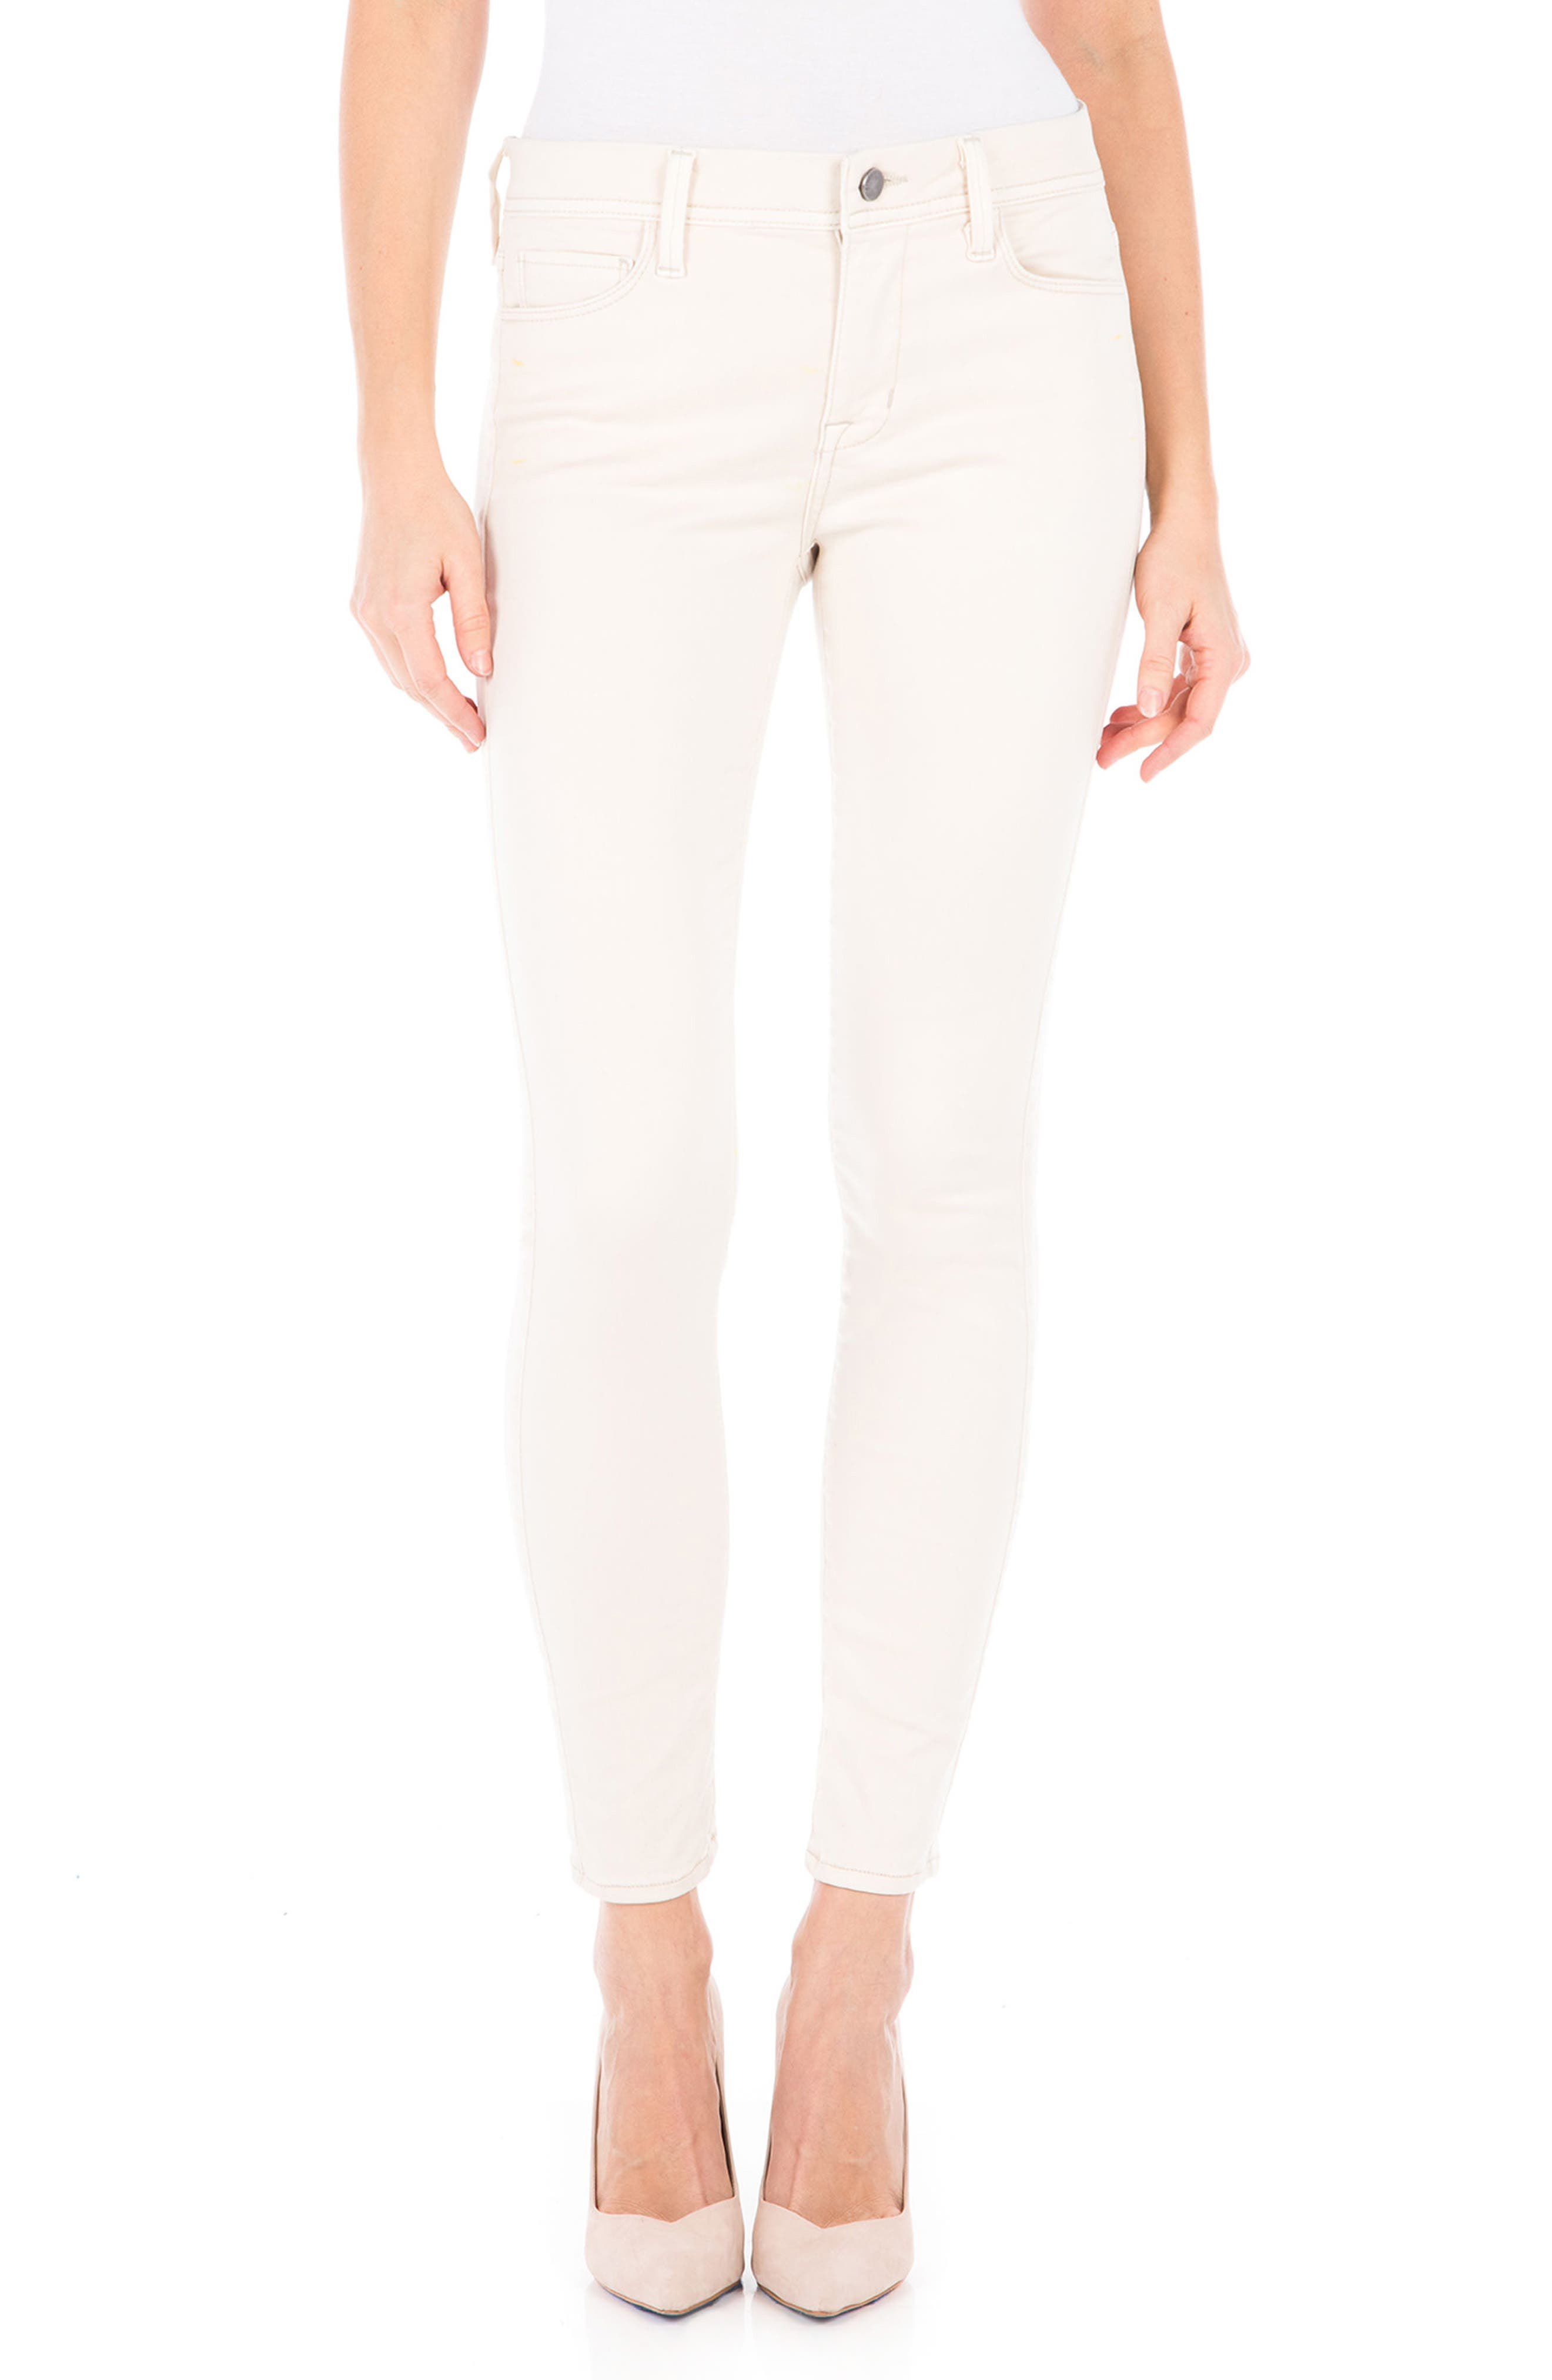 Sola Skinny Jeans,                         Main,                         color, 100